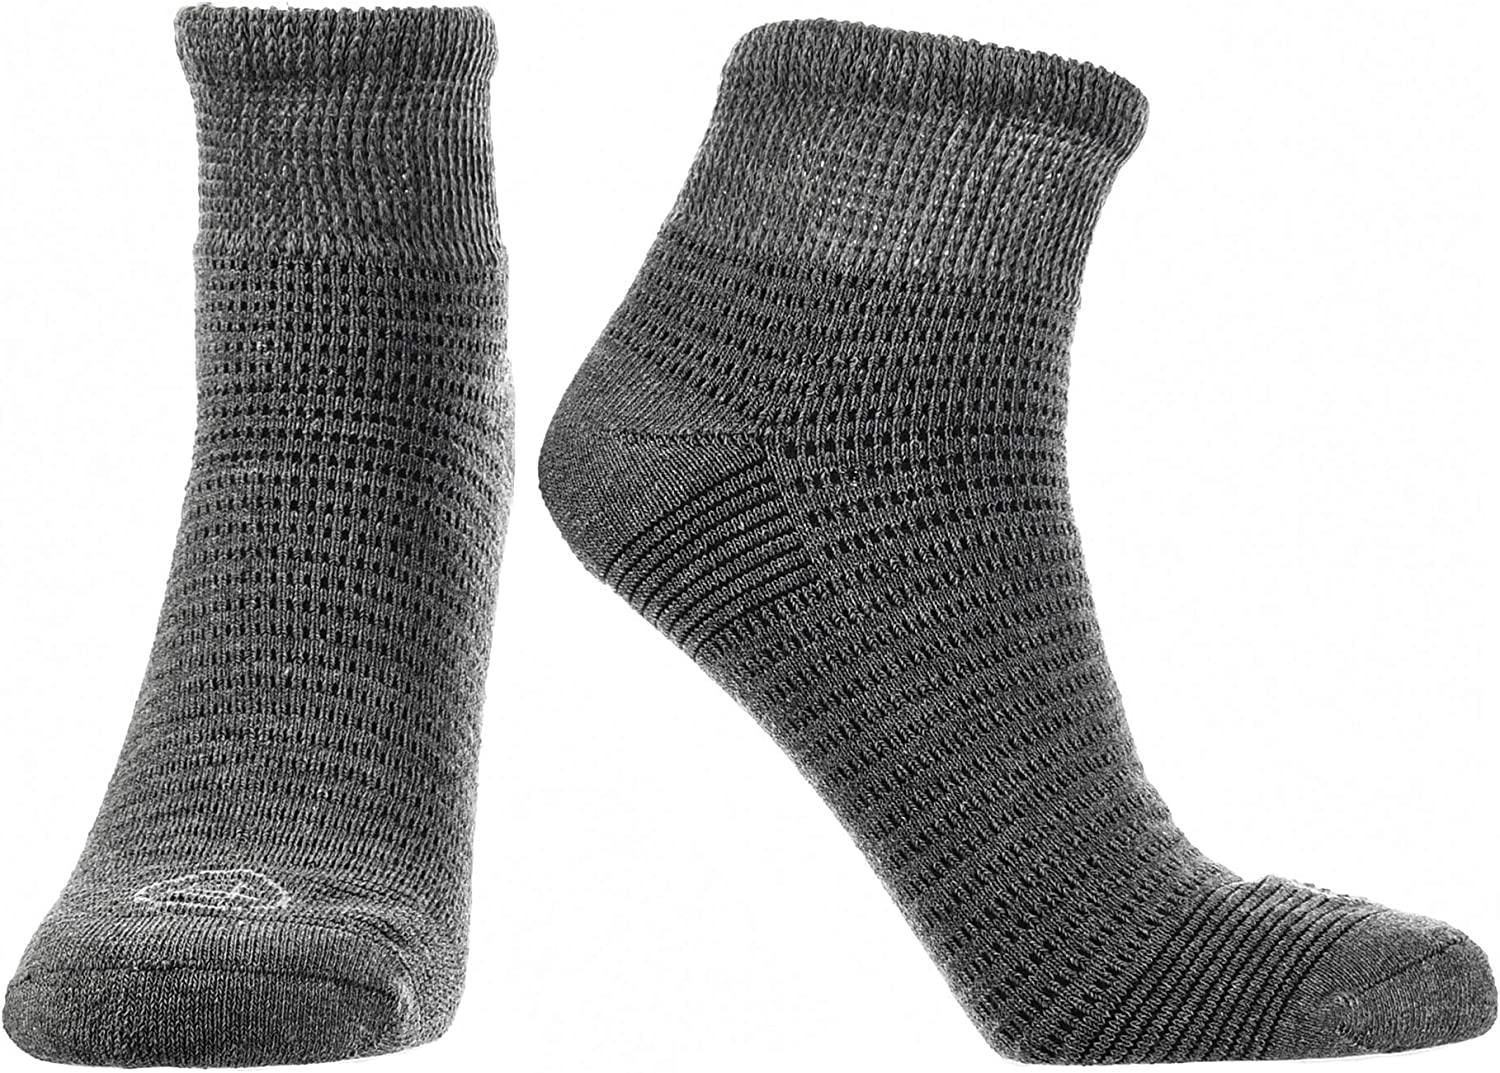 Doctor's Choice Men's Diabetic & Neuropathy Socks, Quarter Length, Non-Binding with Aloe, Antimicrobial, Ventilation, and Seamless Toe, Single Pair, Charcoal, Mens Large: Shoe Size 8-12: Health & Personal Care